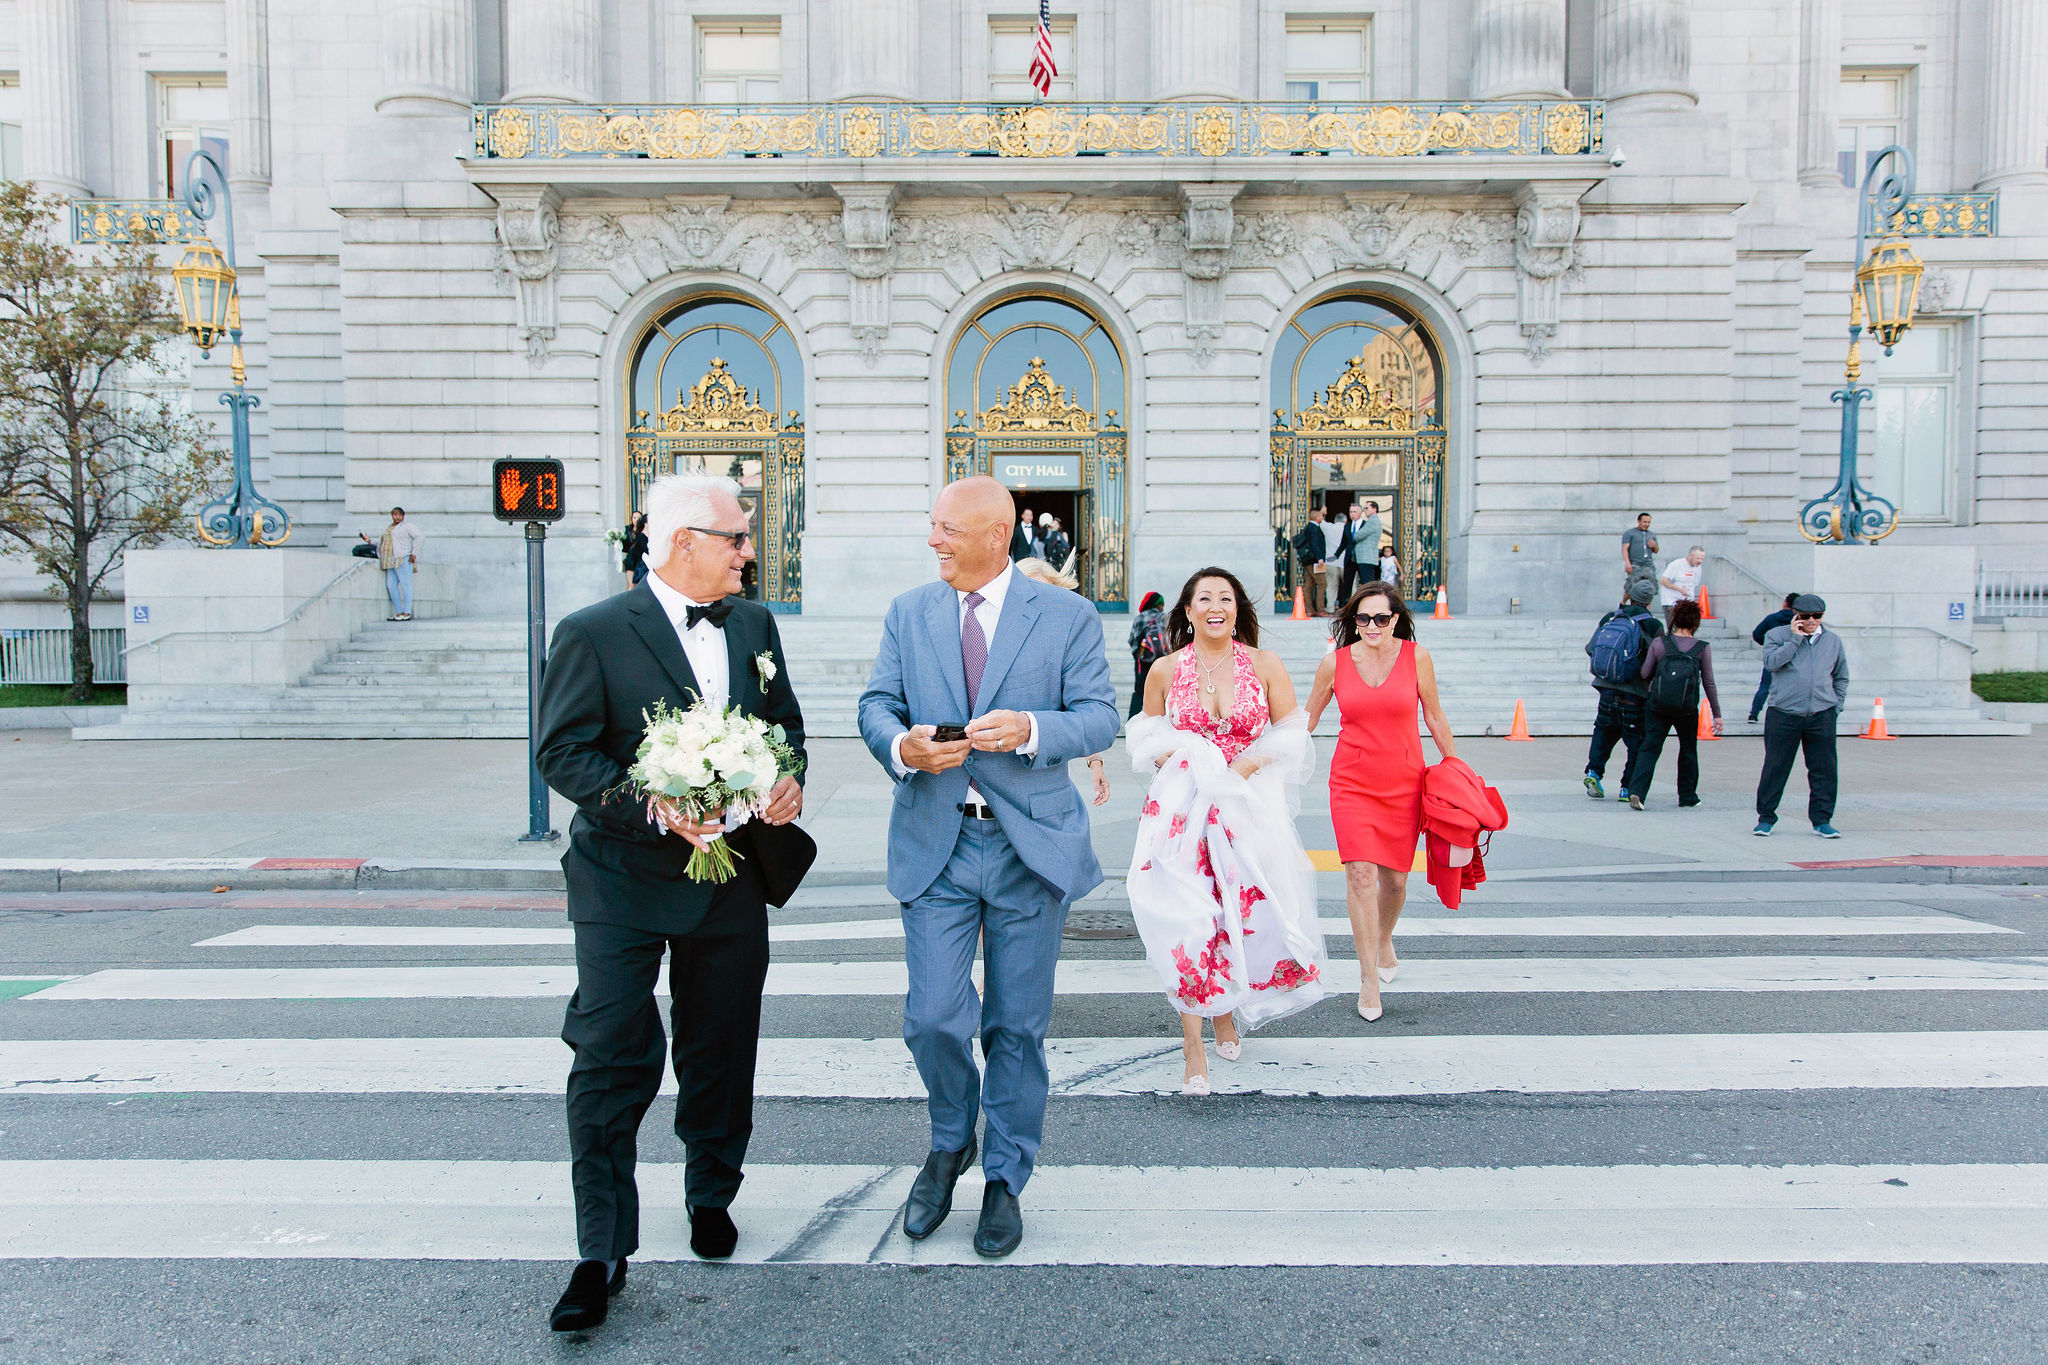 San-Francisco-City-Hall-Wedding-29.JPG